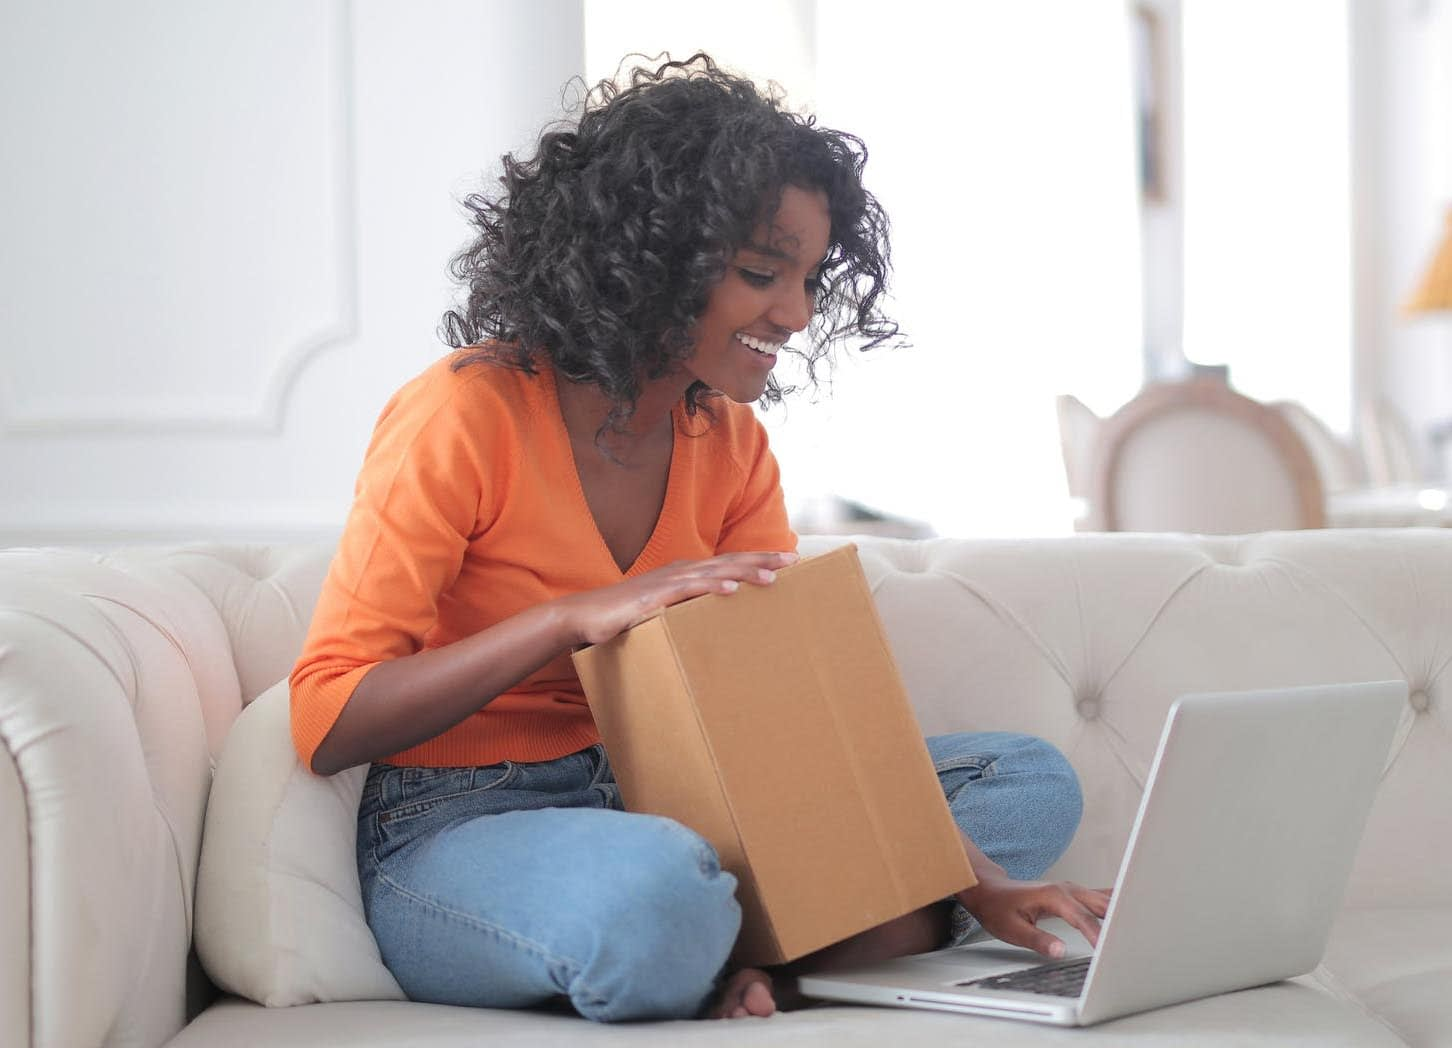 Black woman smiling with a cardboard box in her lap as she types on a laptop